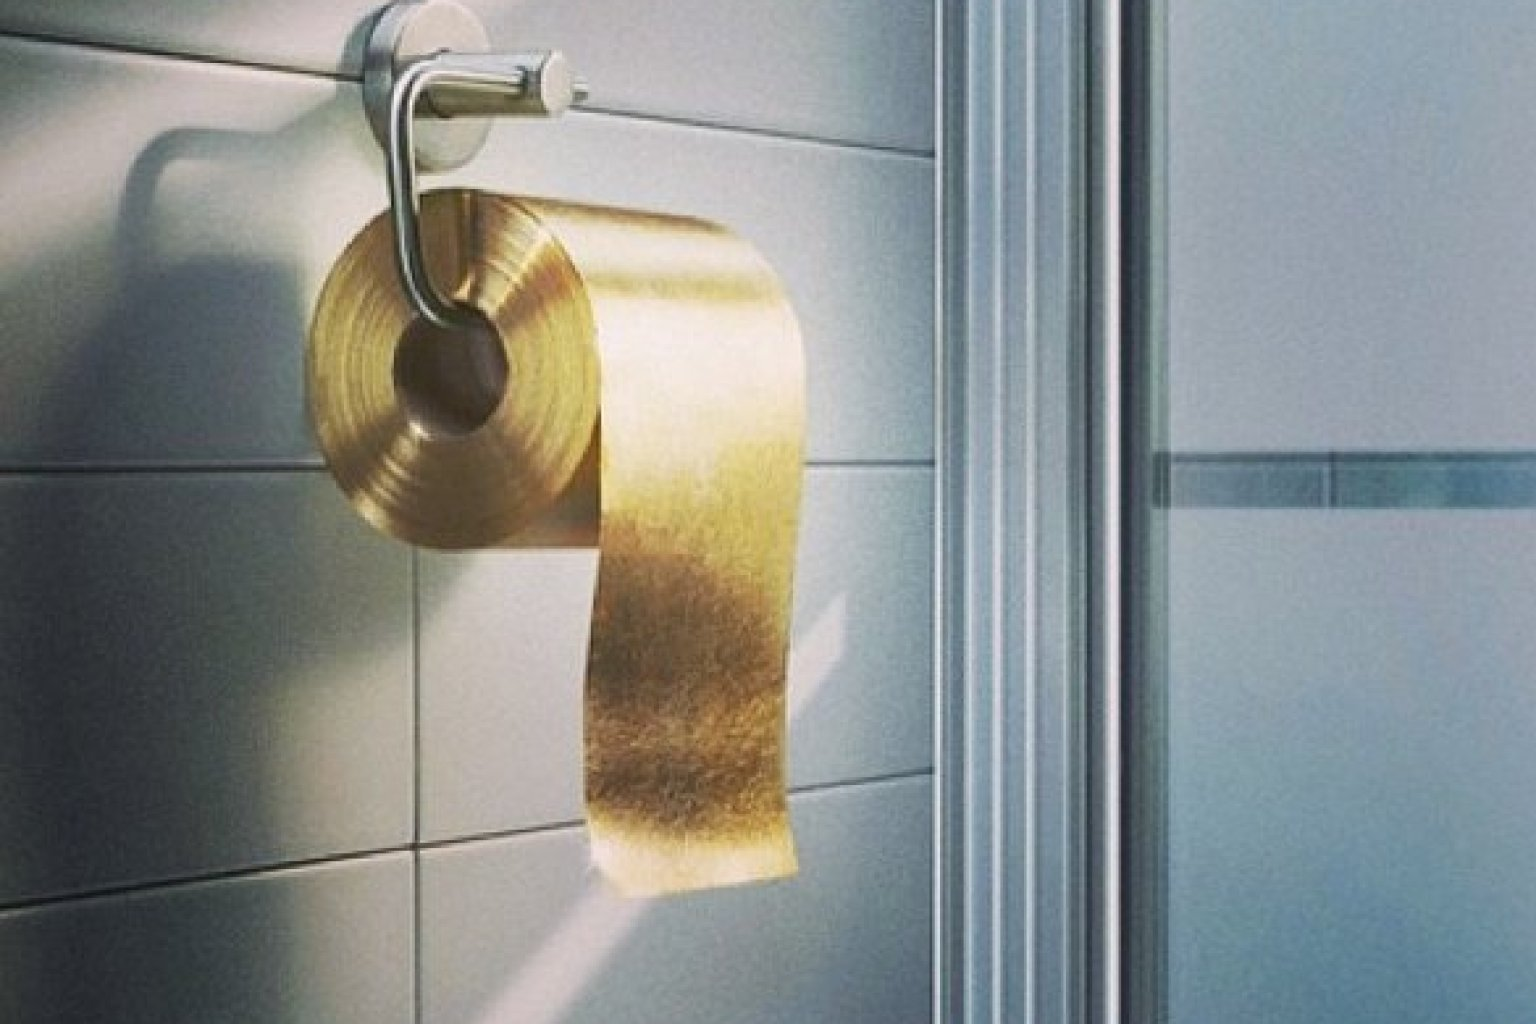 ideas about Toilet Roll Holder on Pinterest   Toilet art     Toilet Paper Manufacturing Business Plan  Toilet Paper Manufacturing Business  Plan Suppliers and Manufacturers at Alibaba com